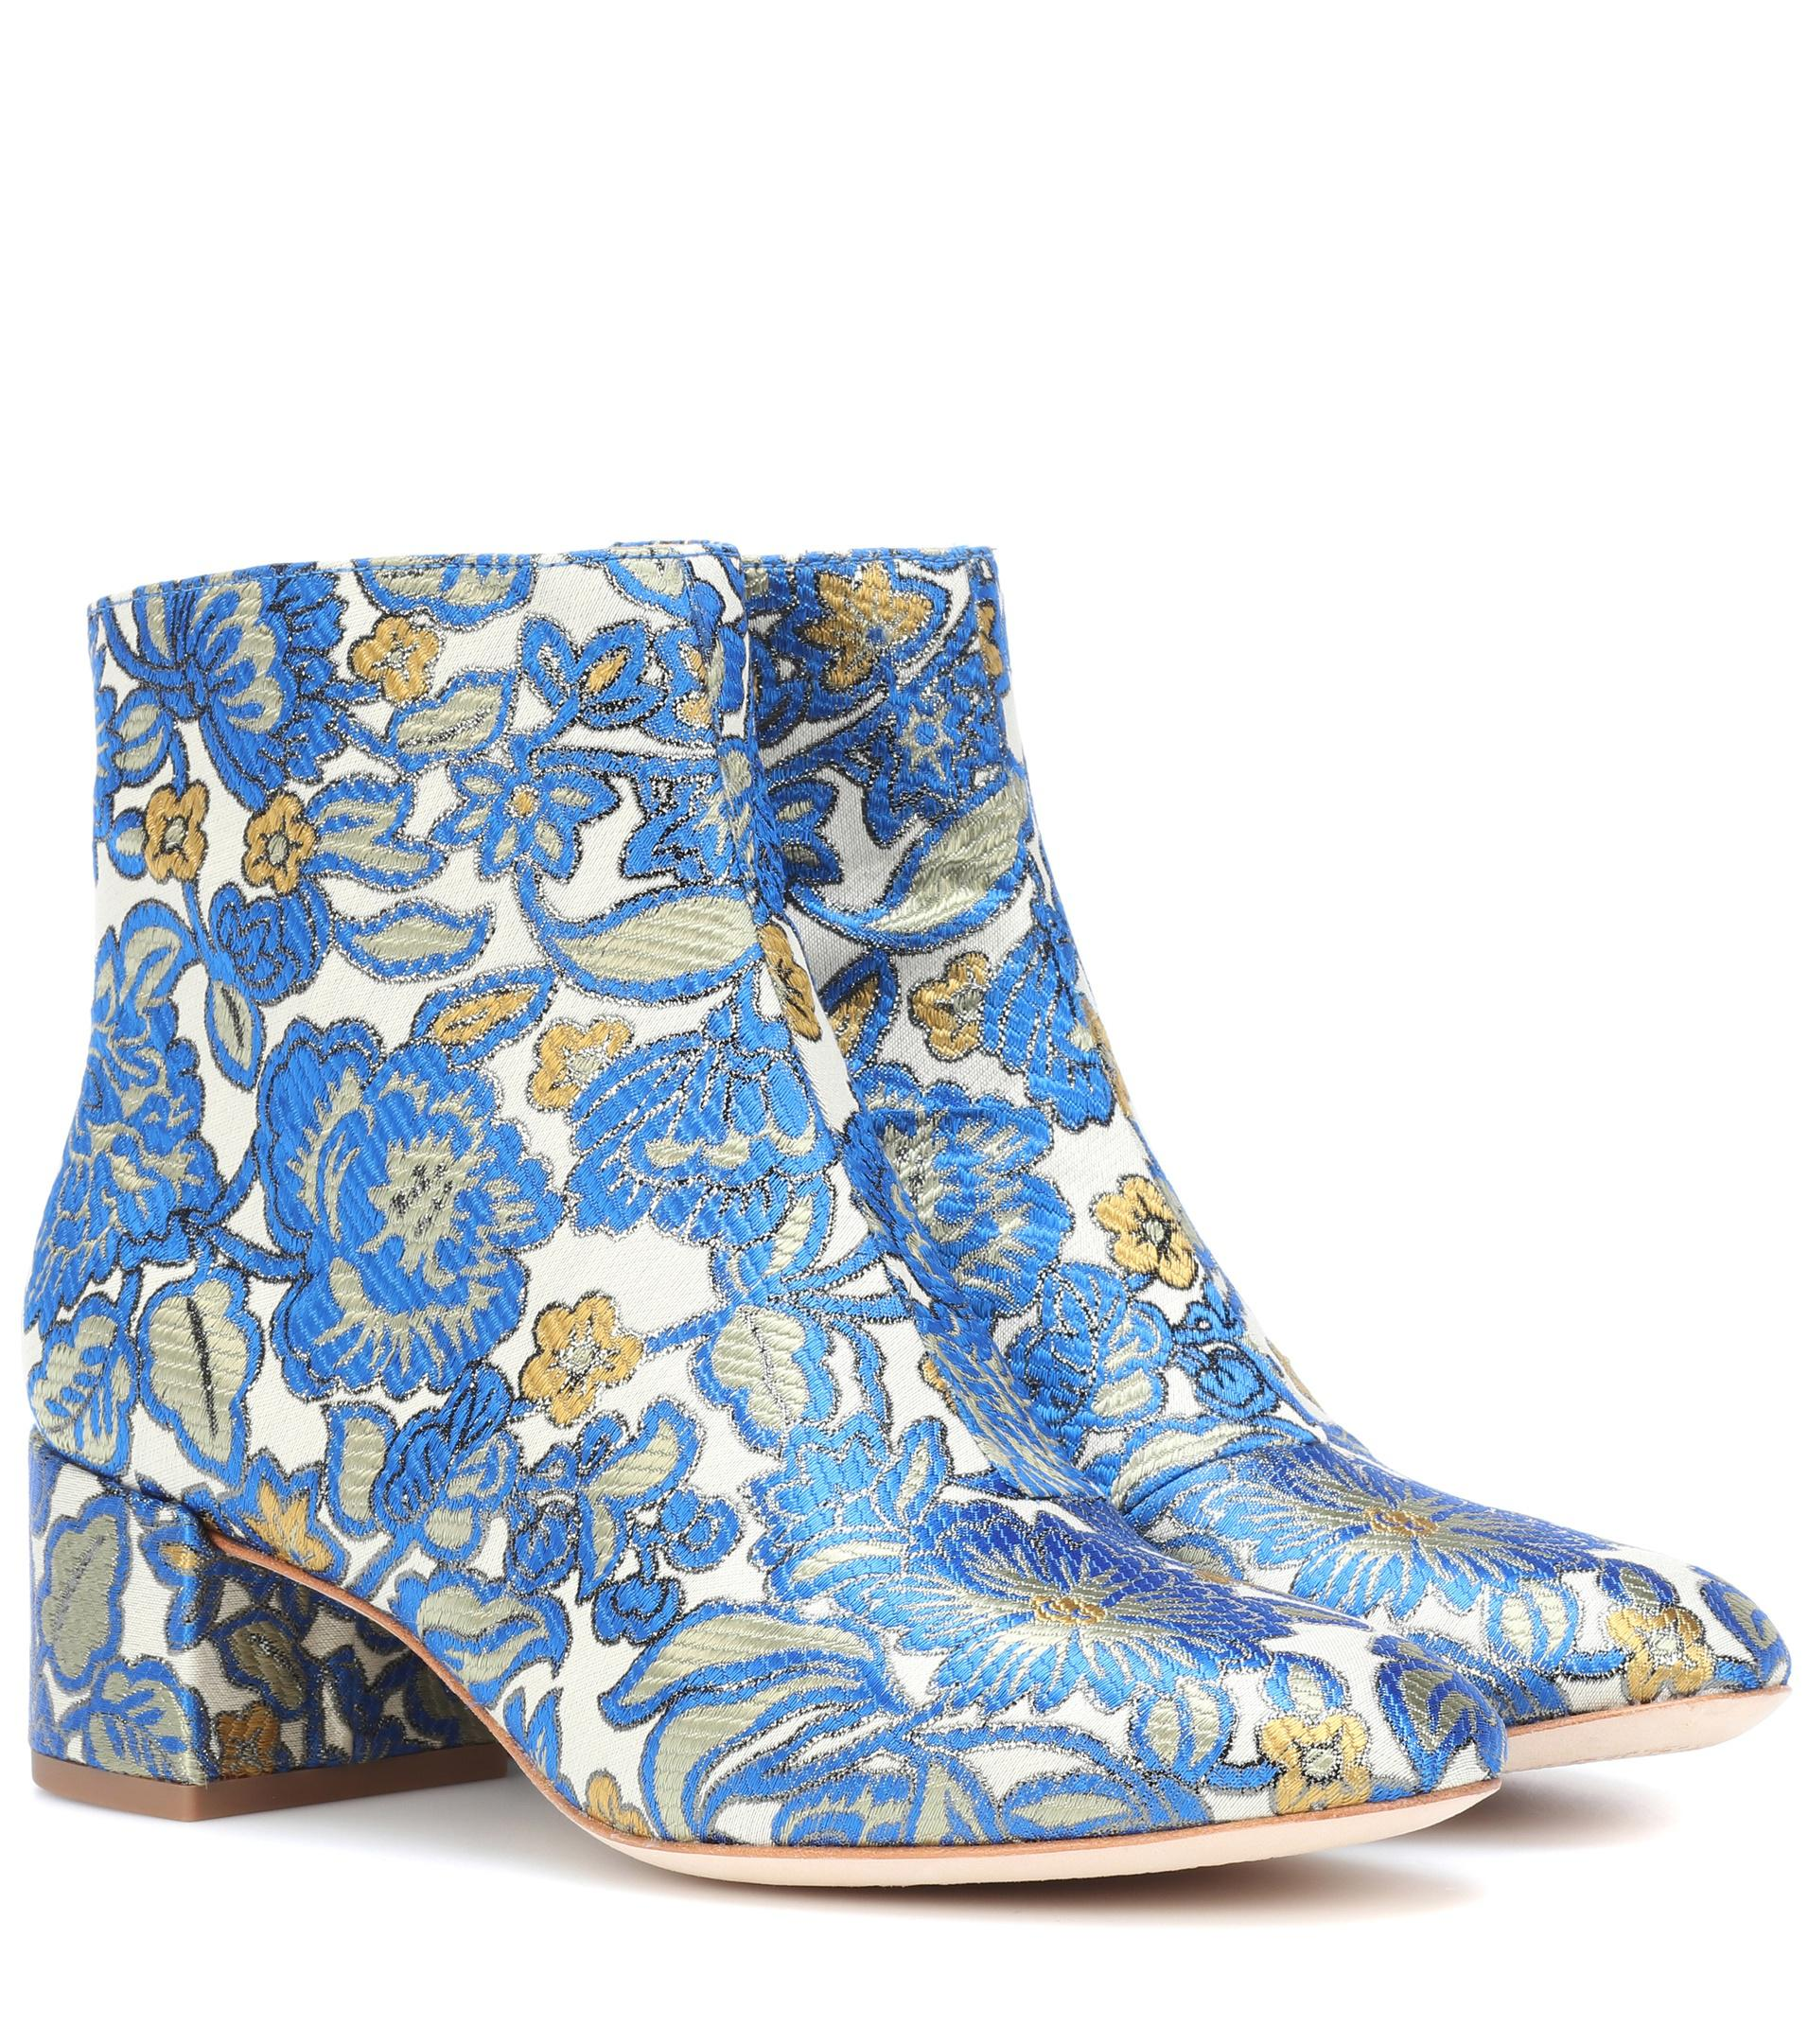 645f7e1ee Tory Burch Shelby 50 Brocade Ankle Boots in Blue - Lyst